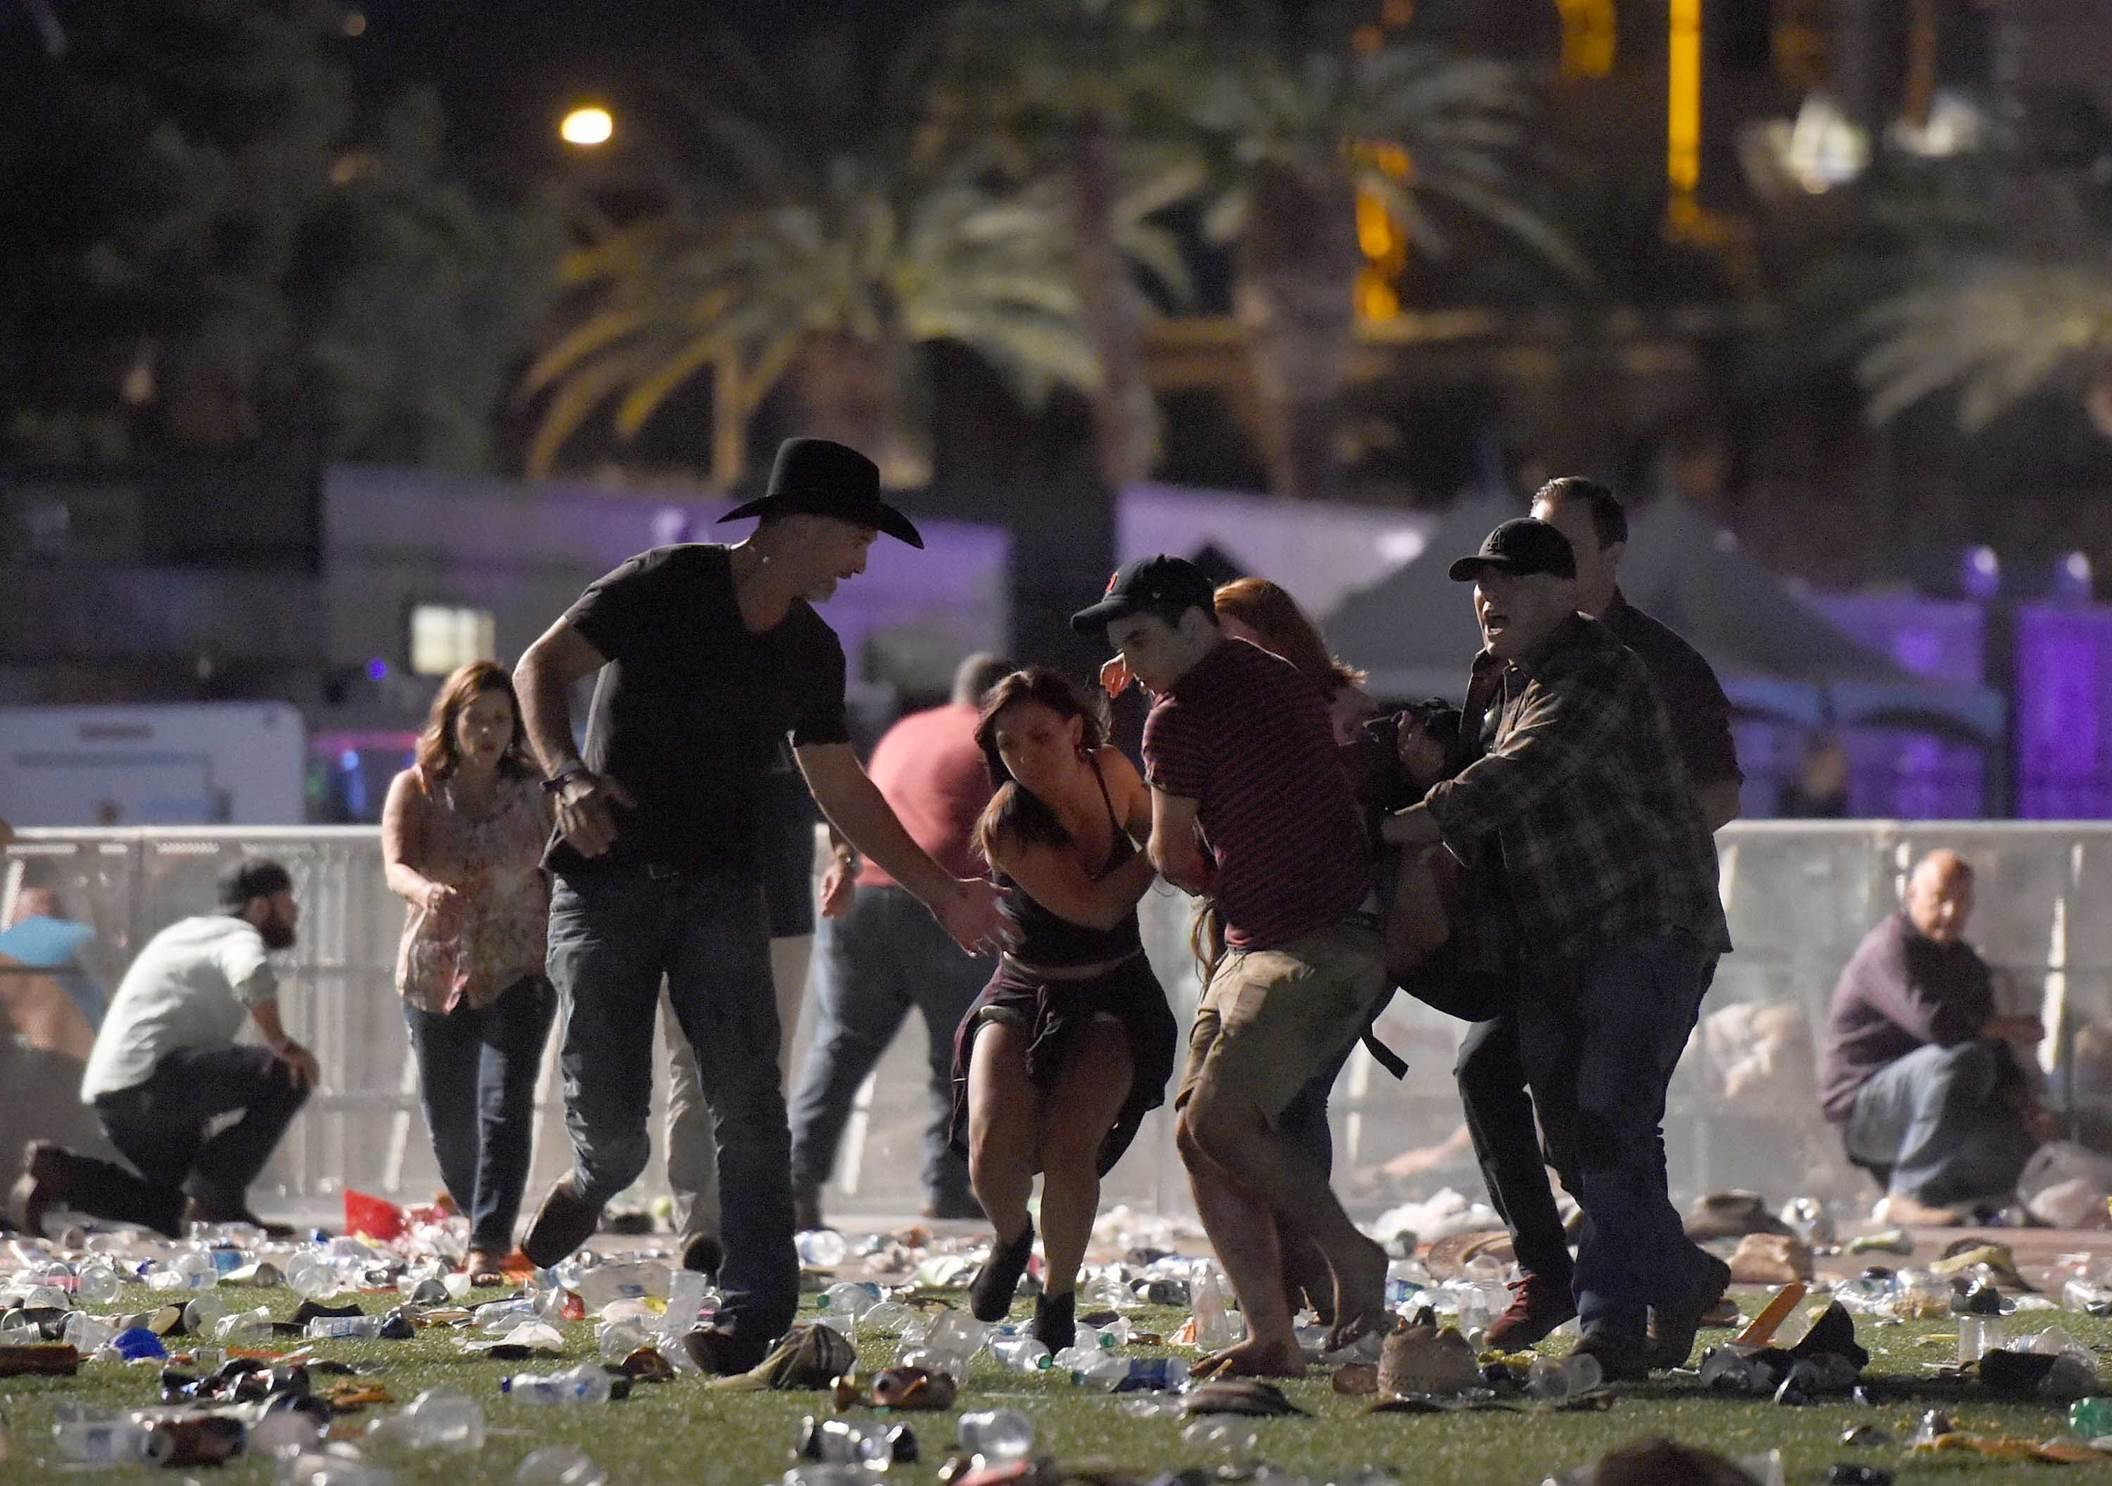 Did Vegas Shooter Act Alone?